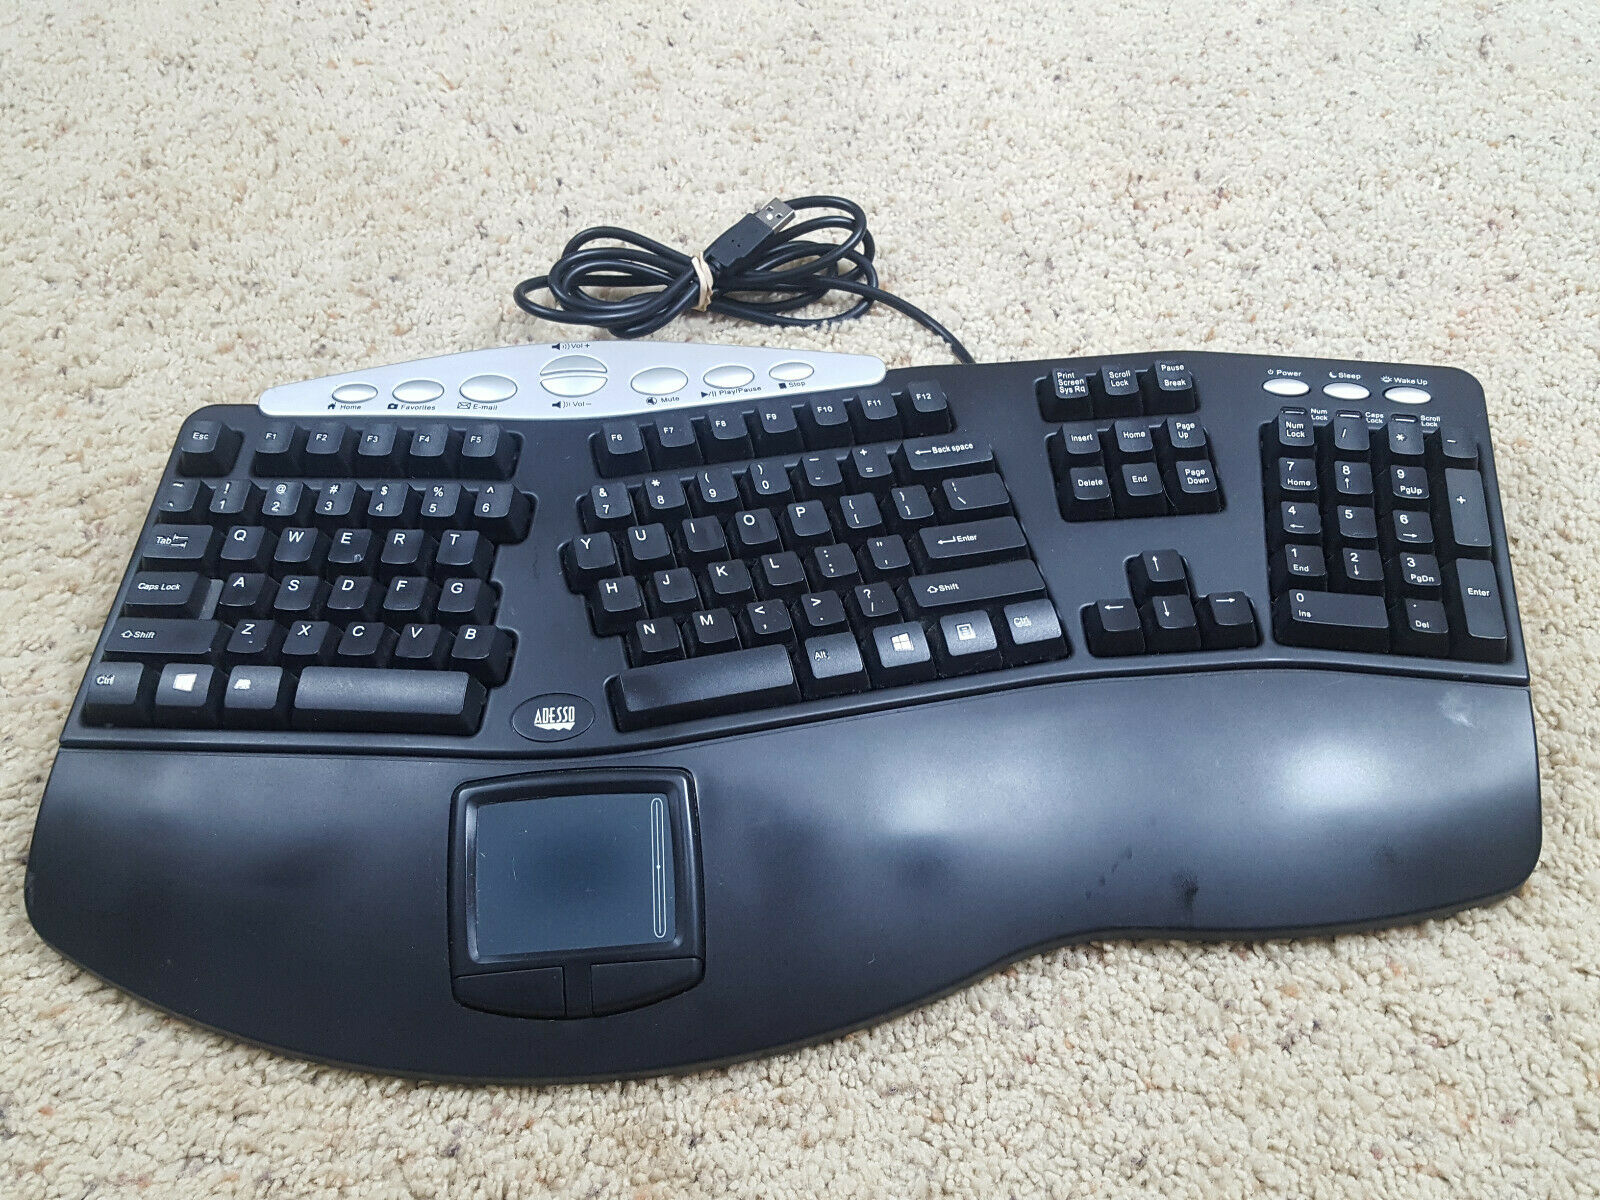 Adesso Pck-308ub Ergonomic Contoured Multimedia Touchpad Keyboard. Buy it now for 59.95